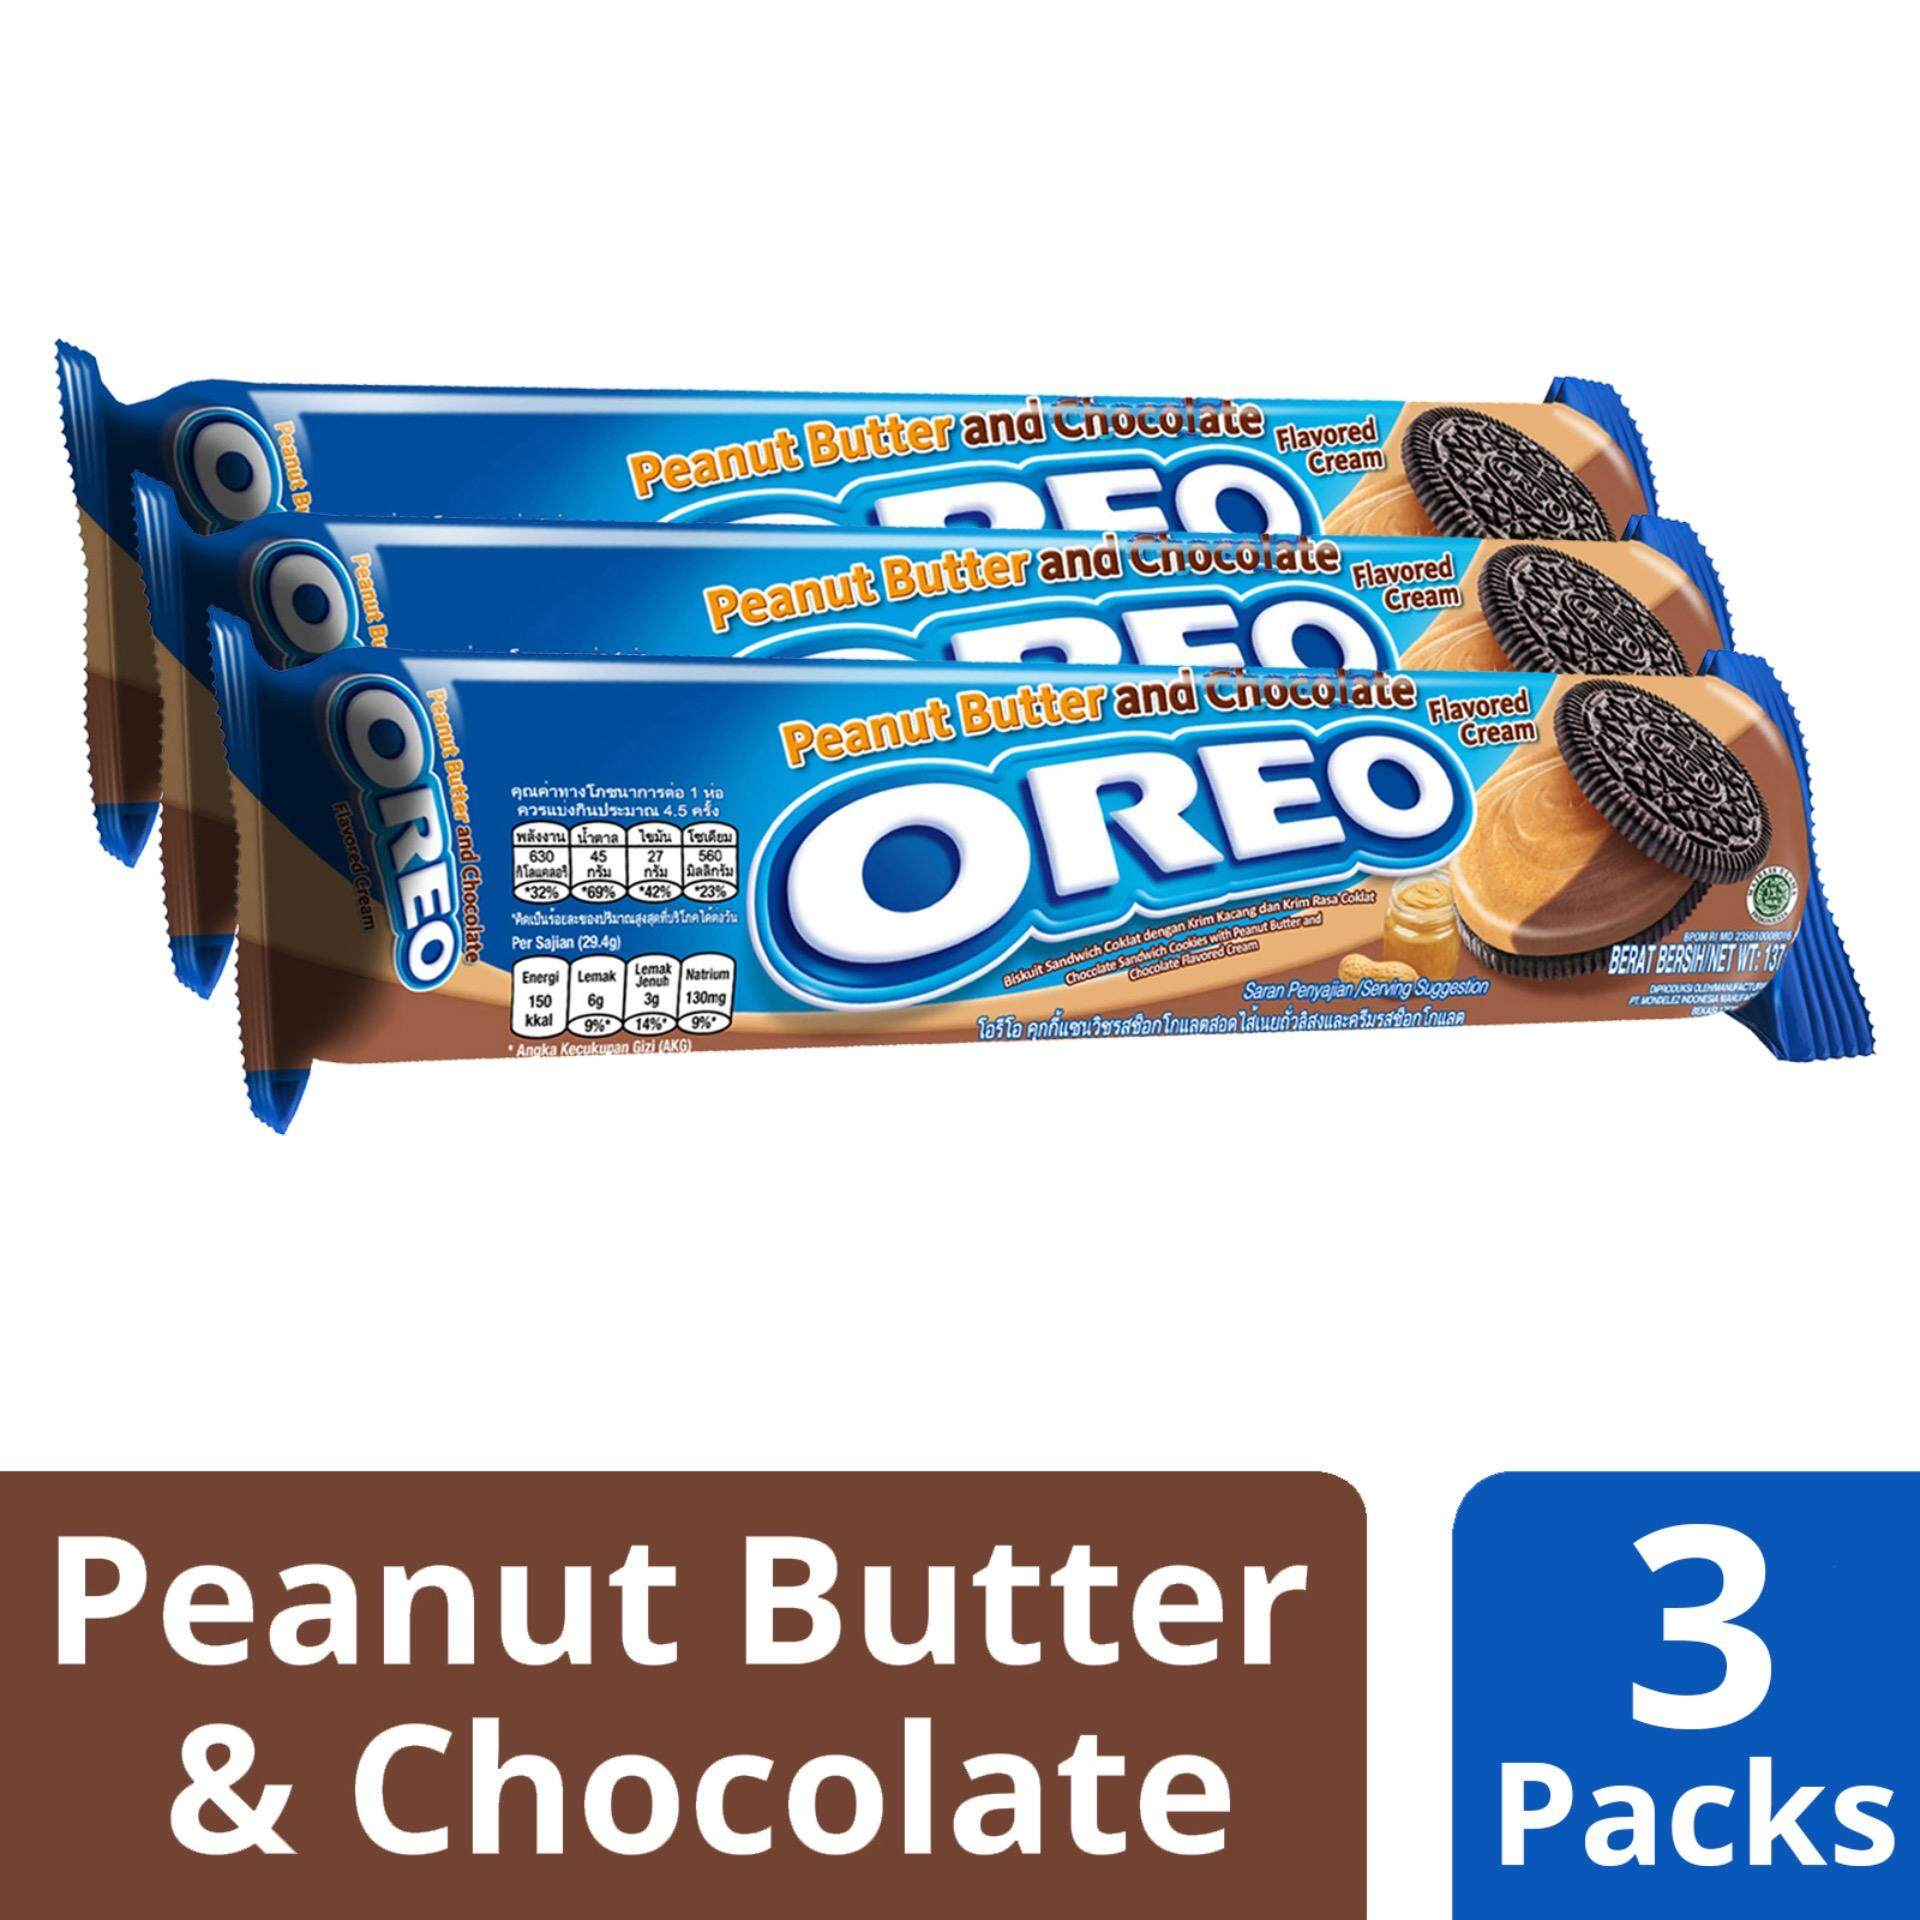 Oreo Peanut Butter and Chocolate Cream 137g X 3